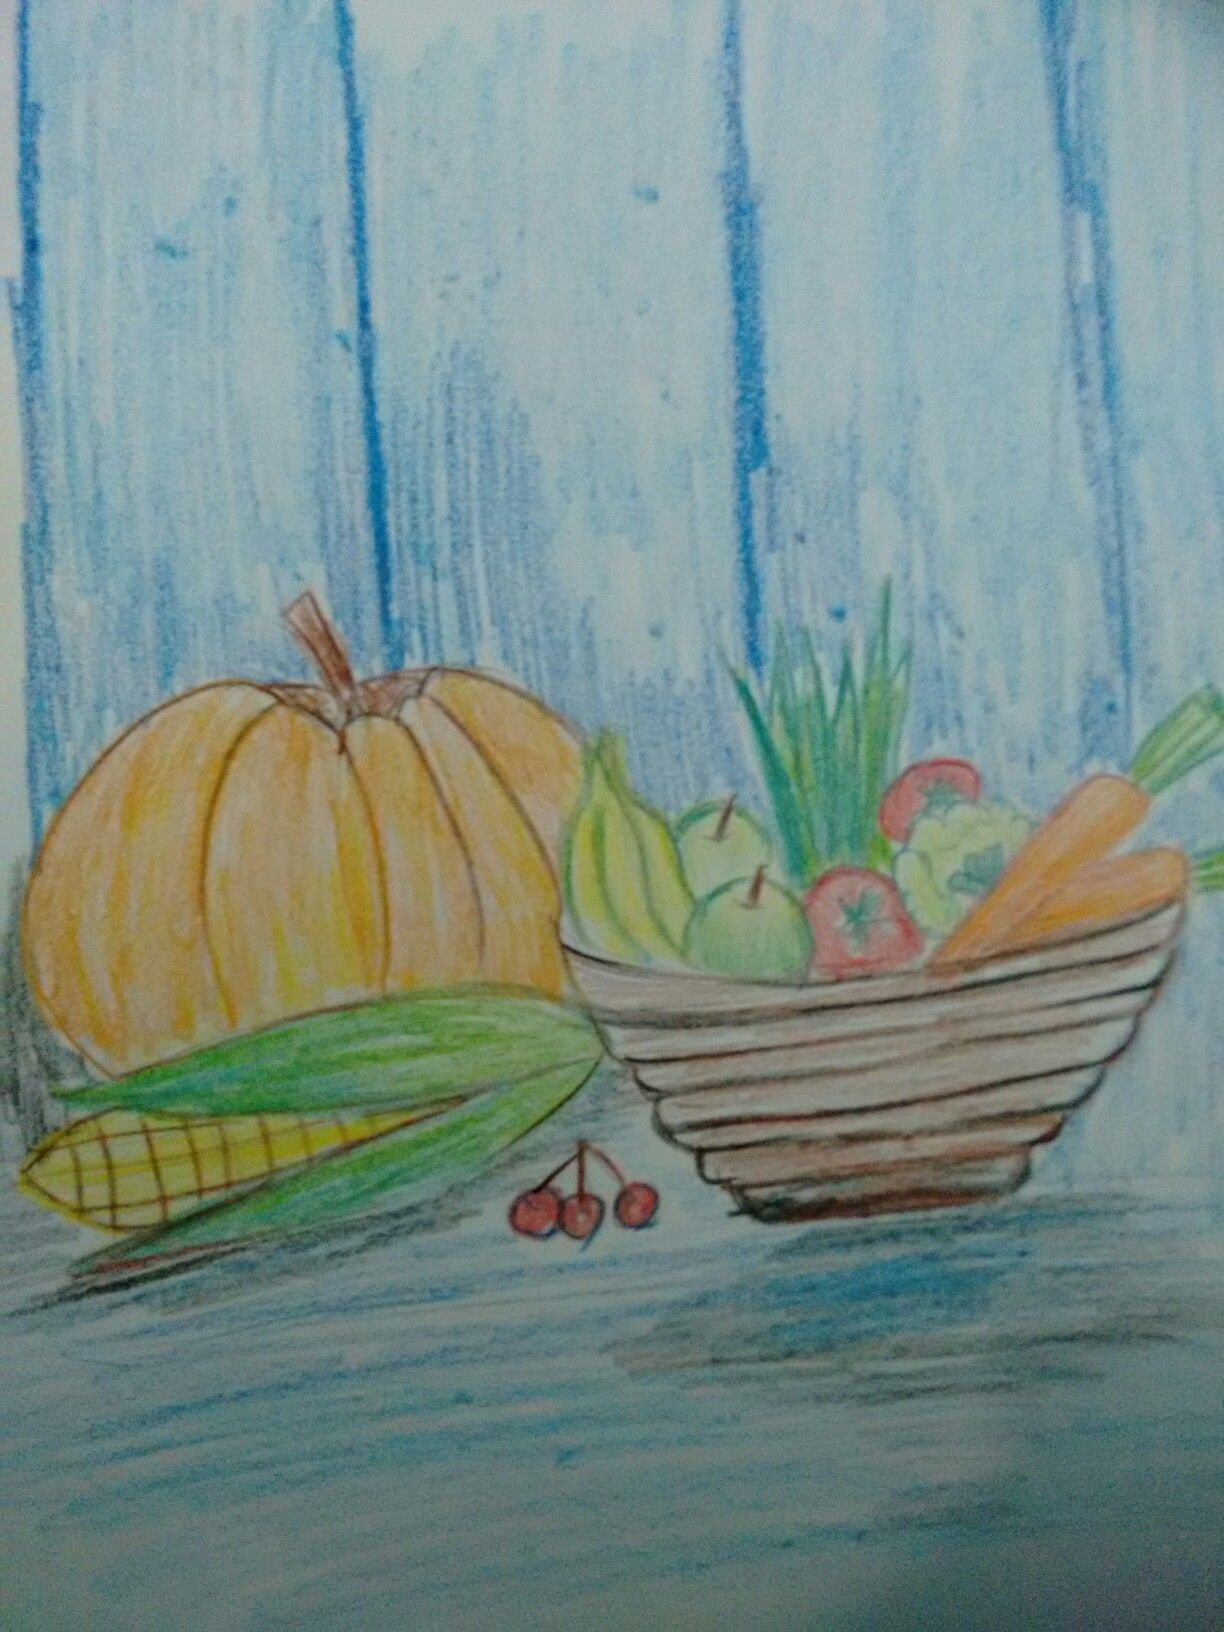 Fruits and vegetable basket drawing pencil art project for 4th standard